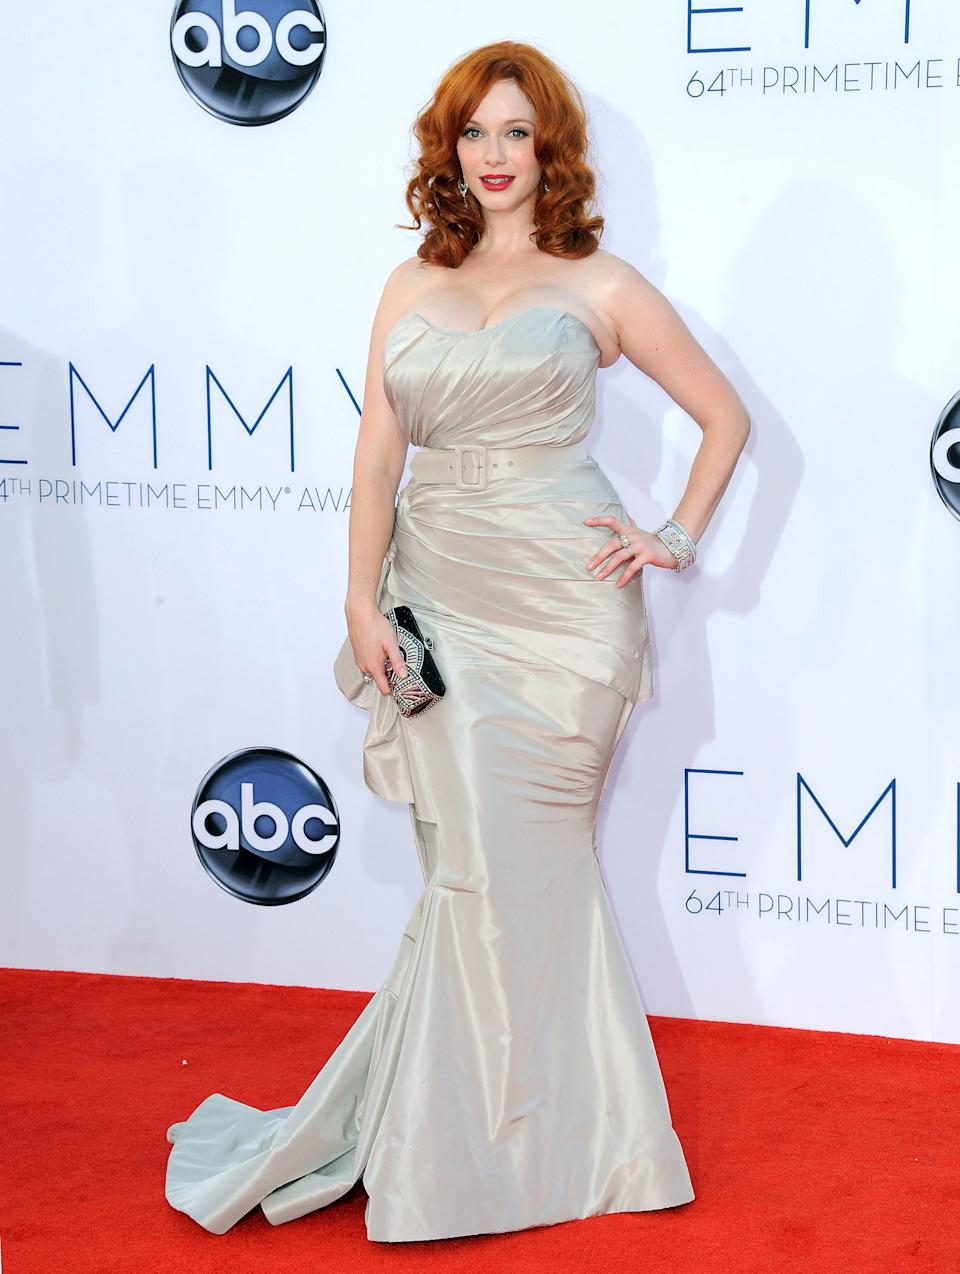 Actress Christina Hendricks arrives at the 64th Primetime Emmy Awards at the Nokia Theatre on Sunday, Sept. 23, 2012, in Los Angeles.  (Photo by Jordan Strauss/Invision/AP)